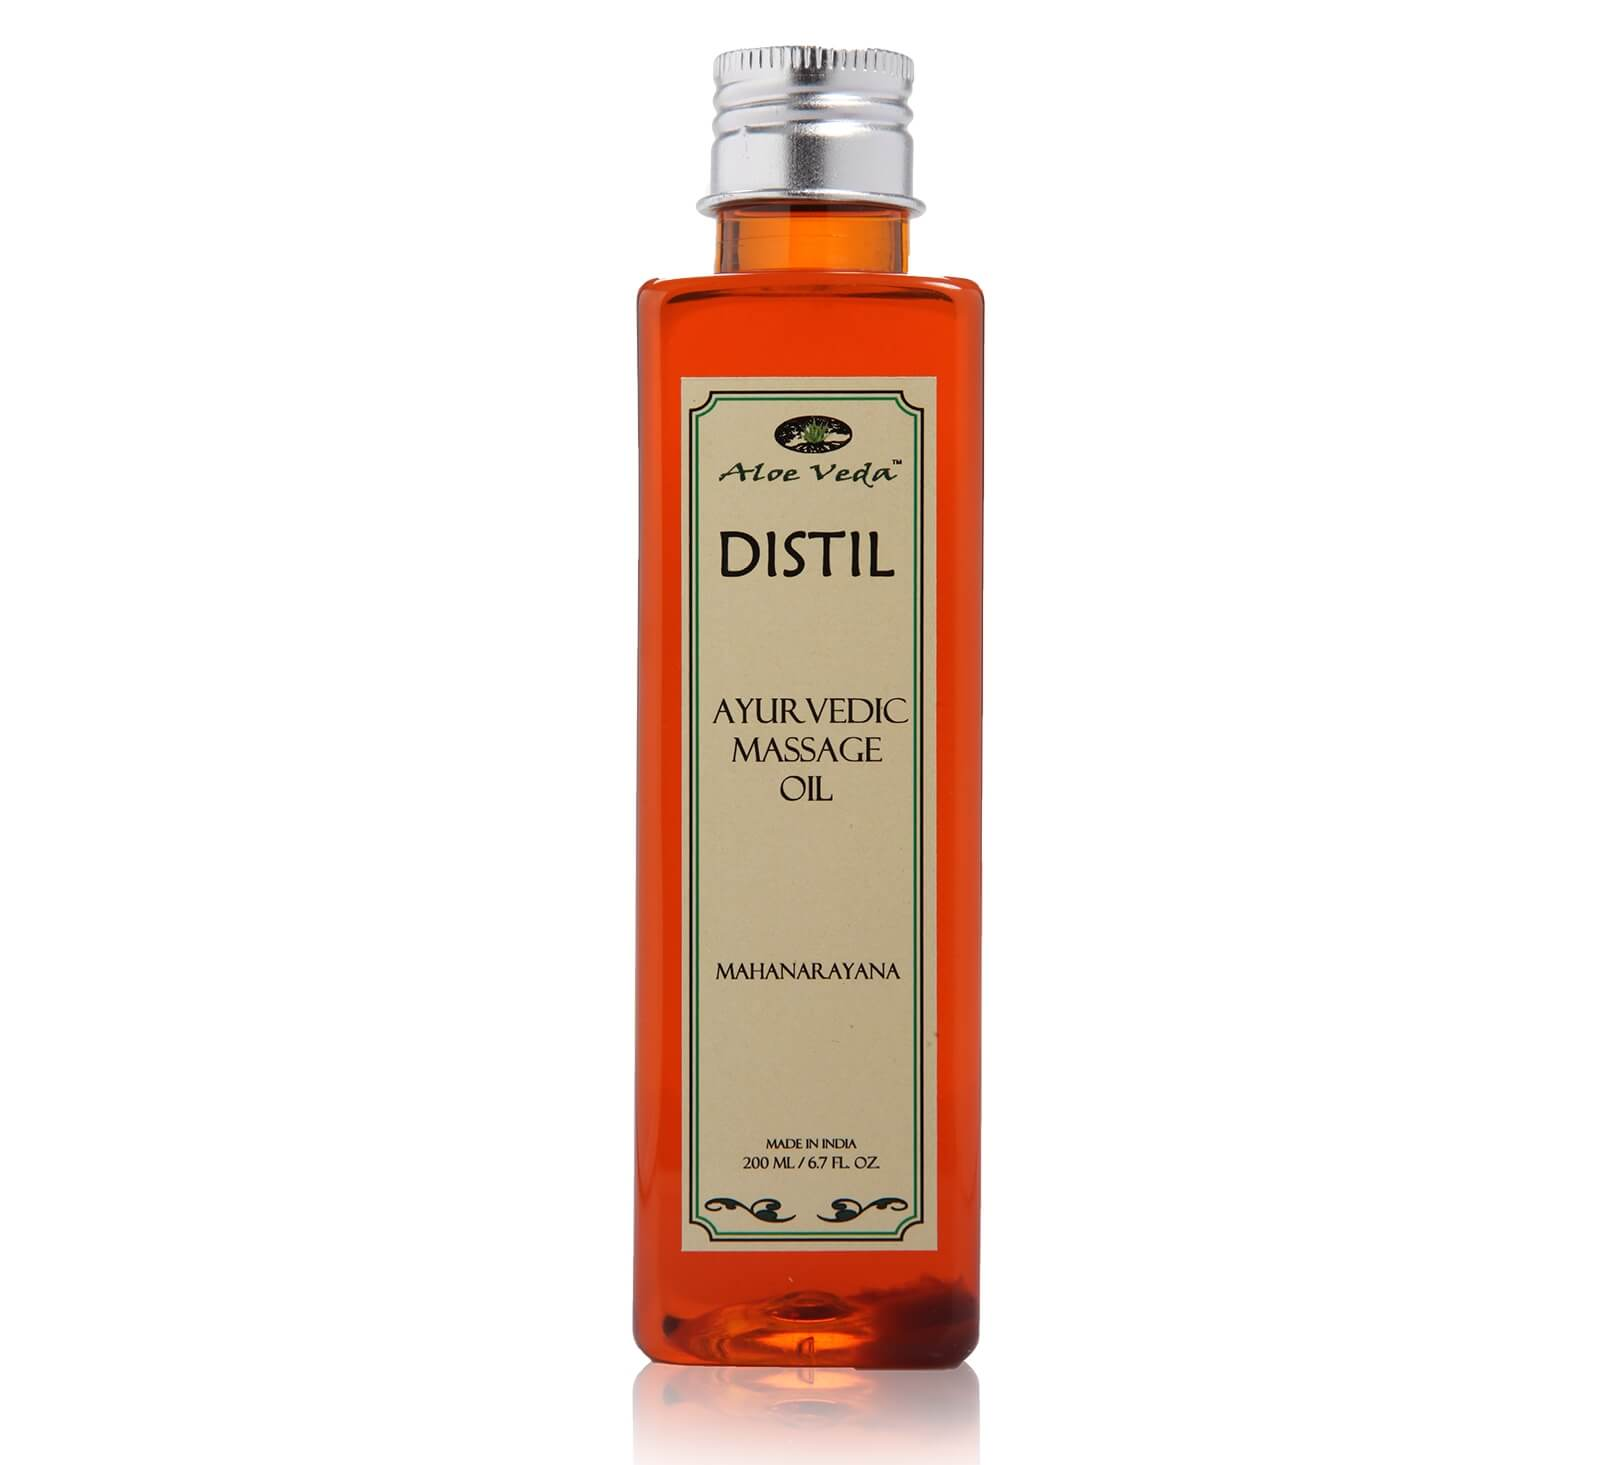 Aloe Veda Distil Ayurvedic Massage Oil Image